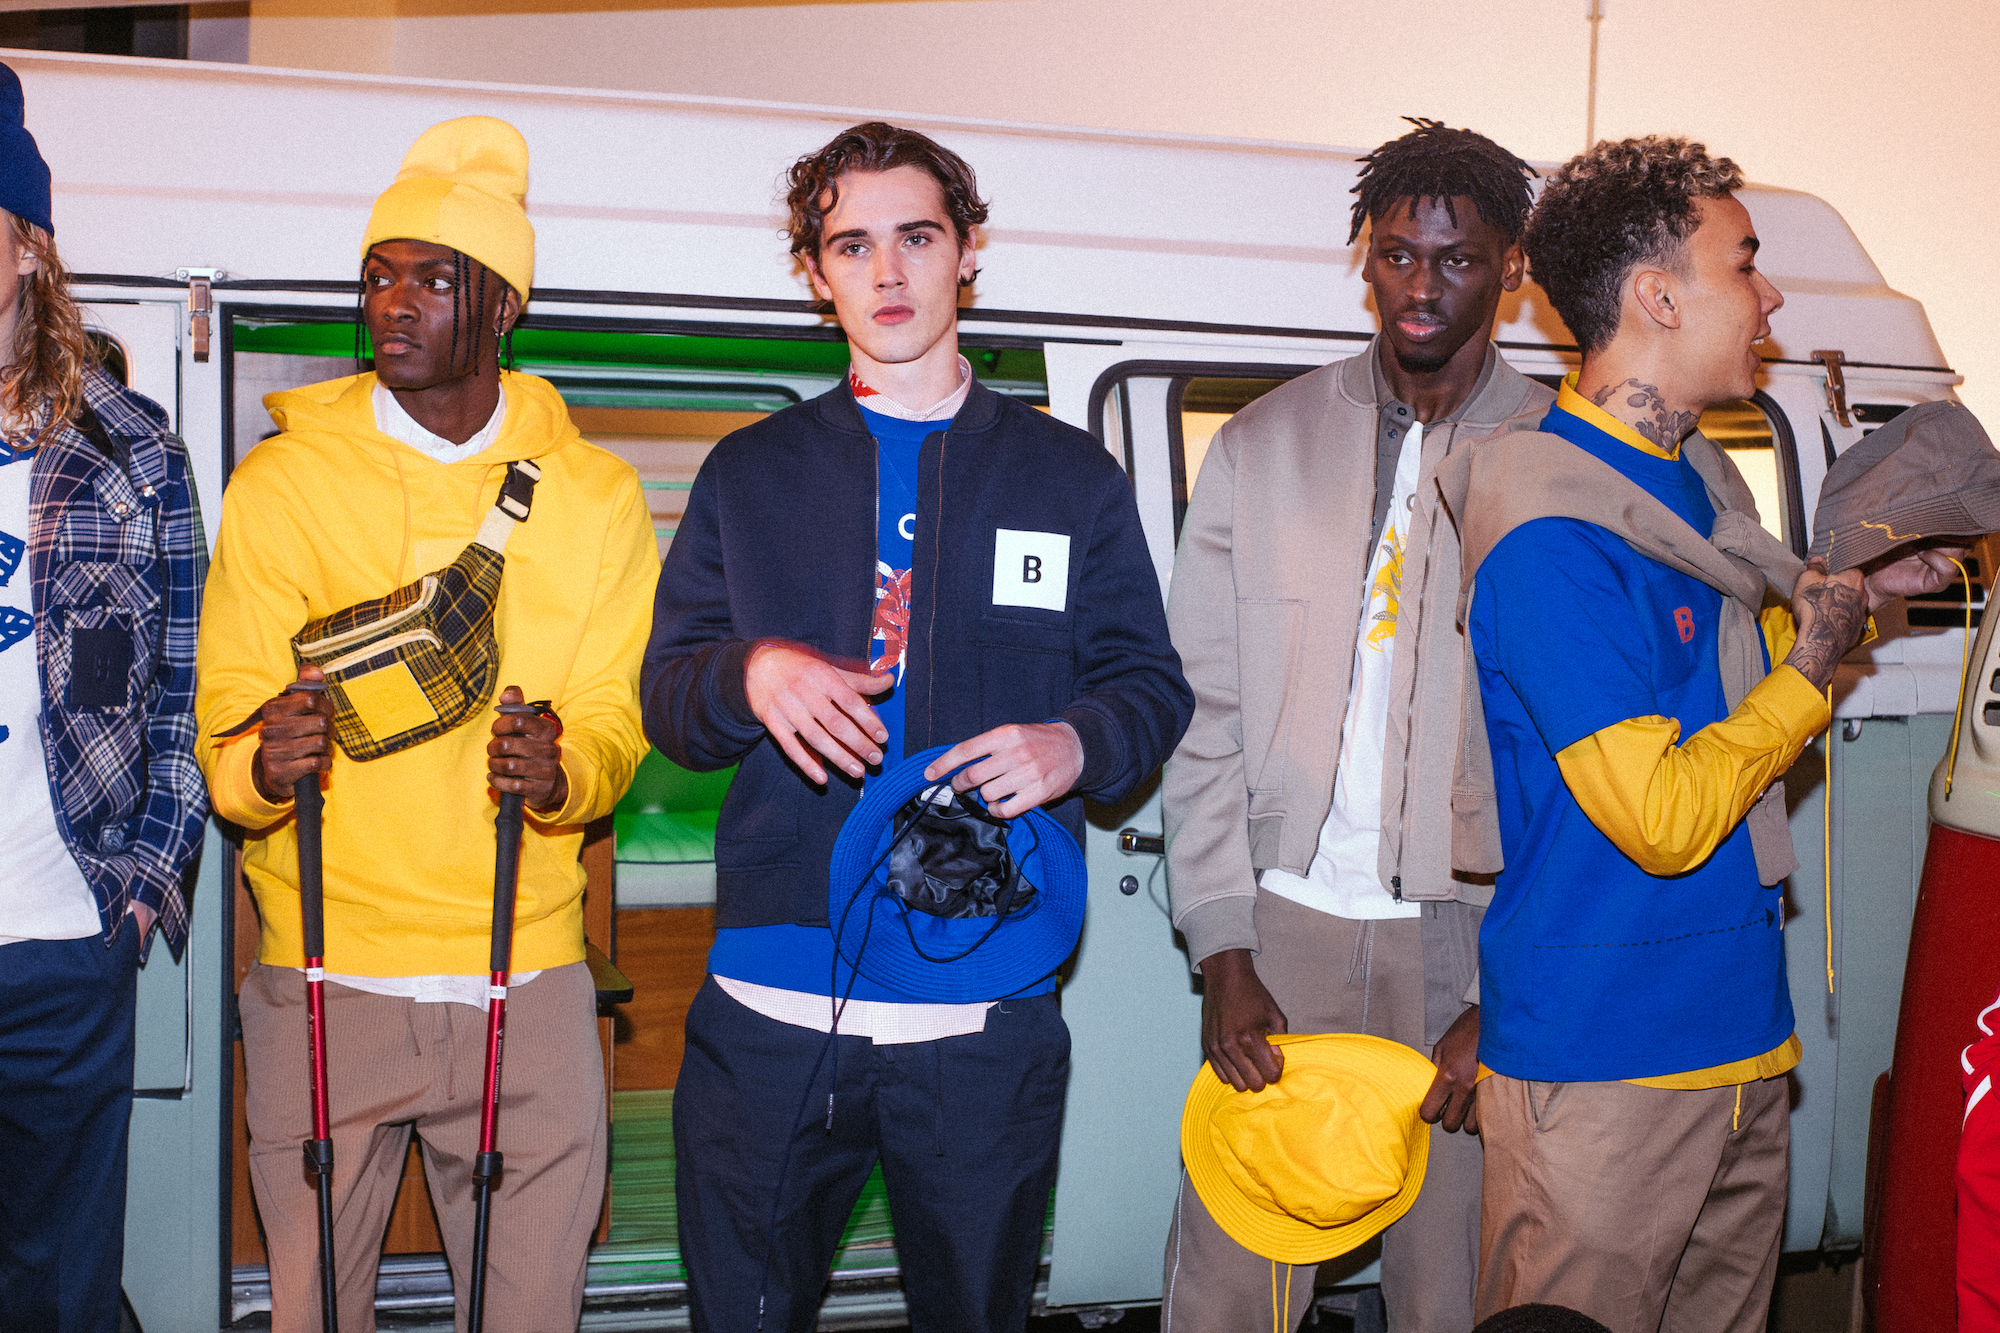 BAND OF OUTSIDERS JADE BERRY Blue Yellow Group